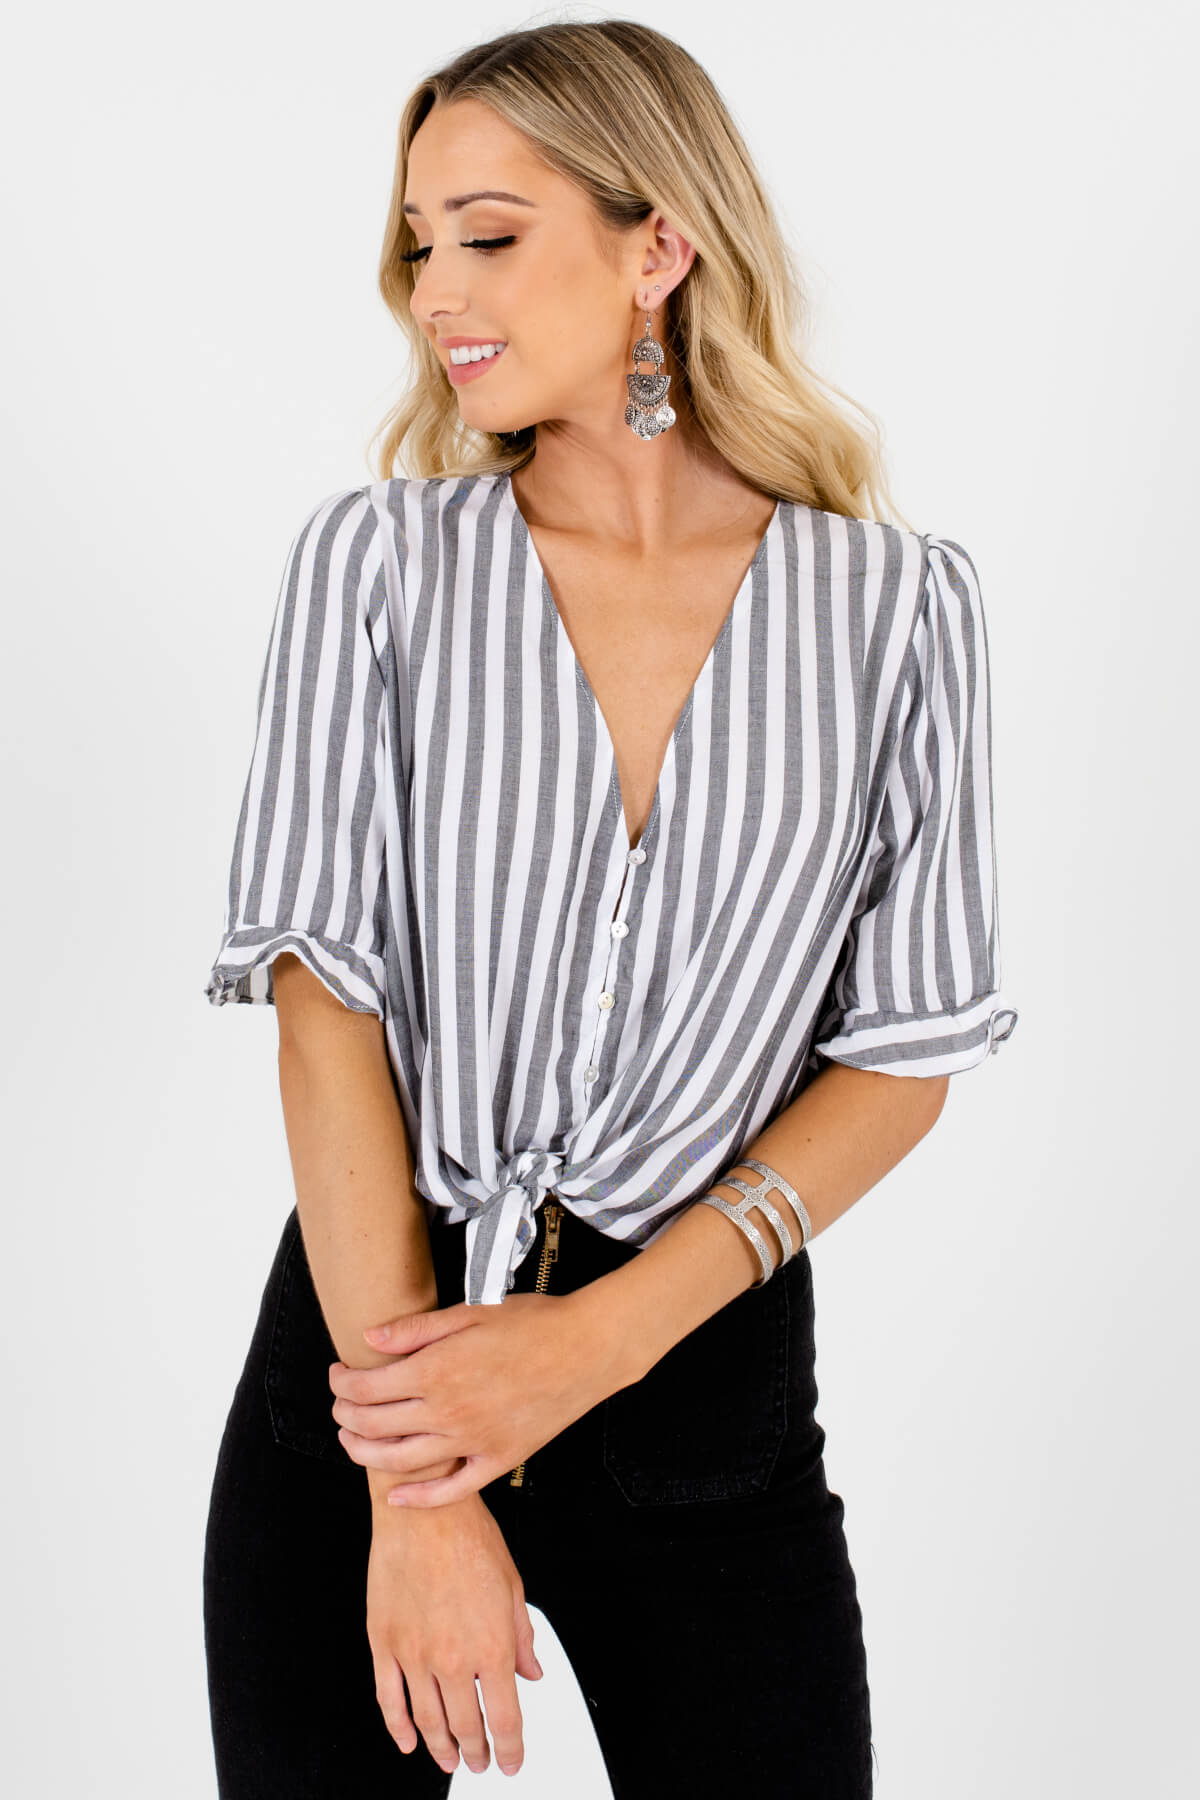 White Gray Striped Button-Up Ruffle Shirts Affordable Online Boutique